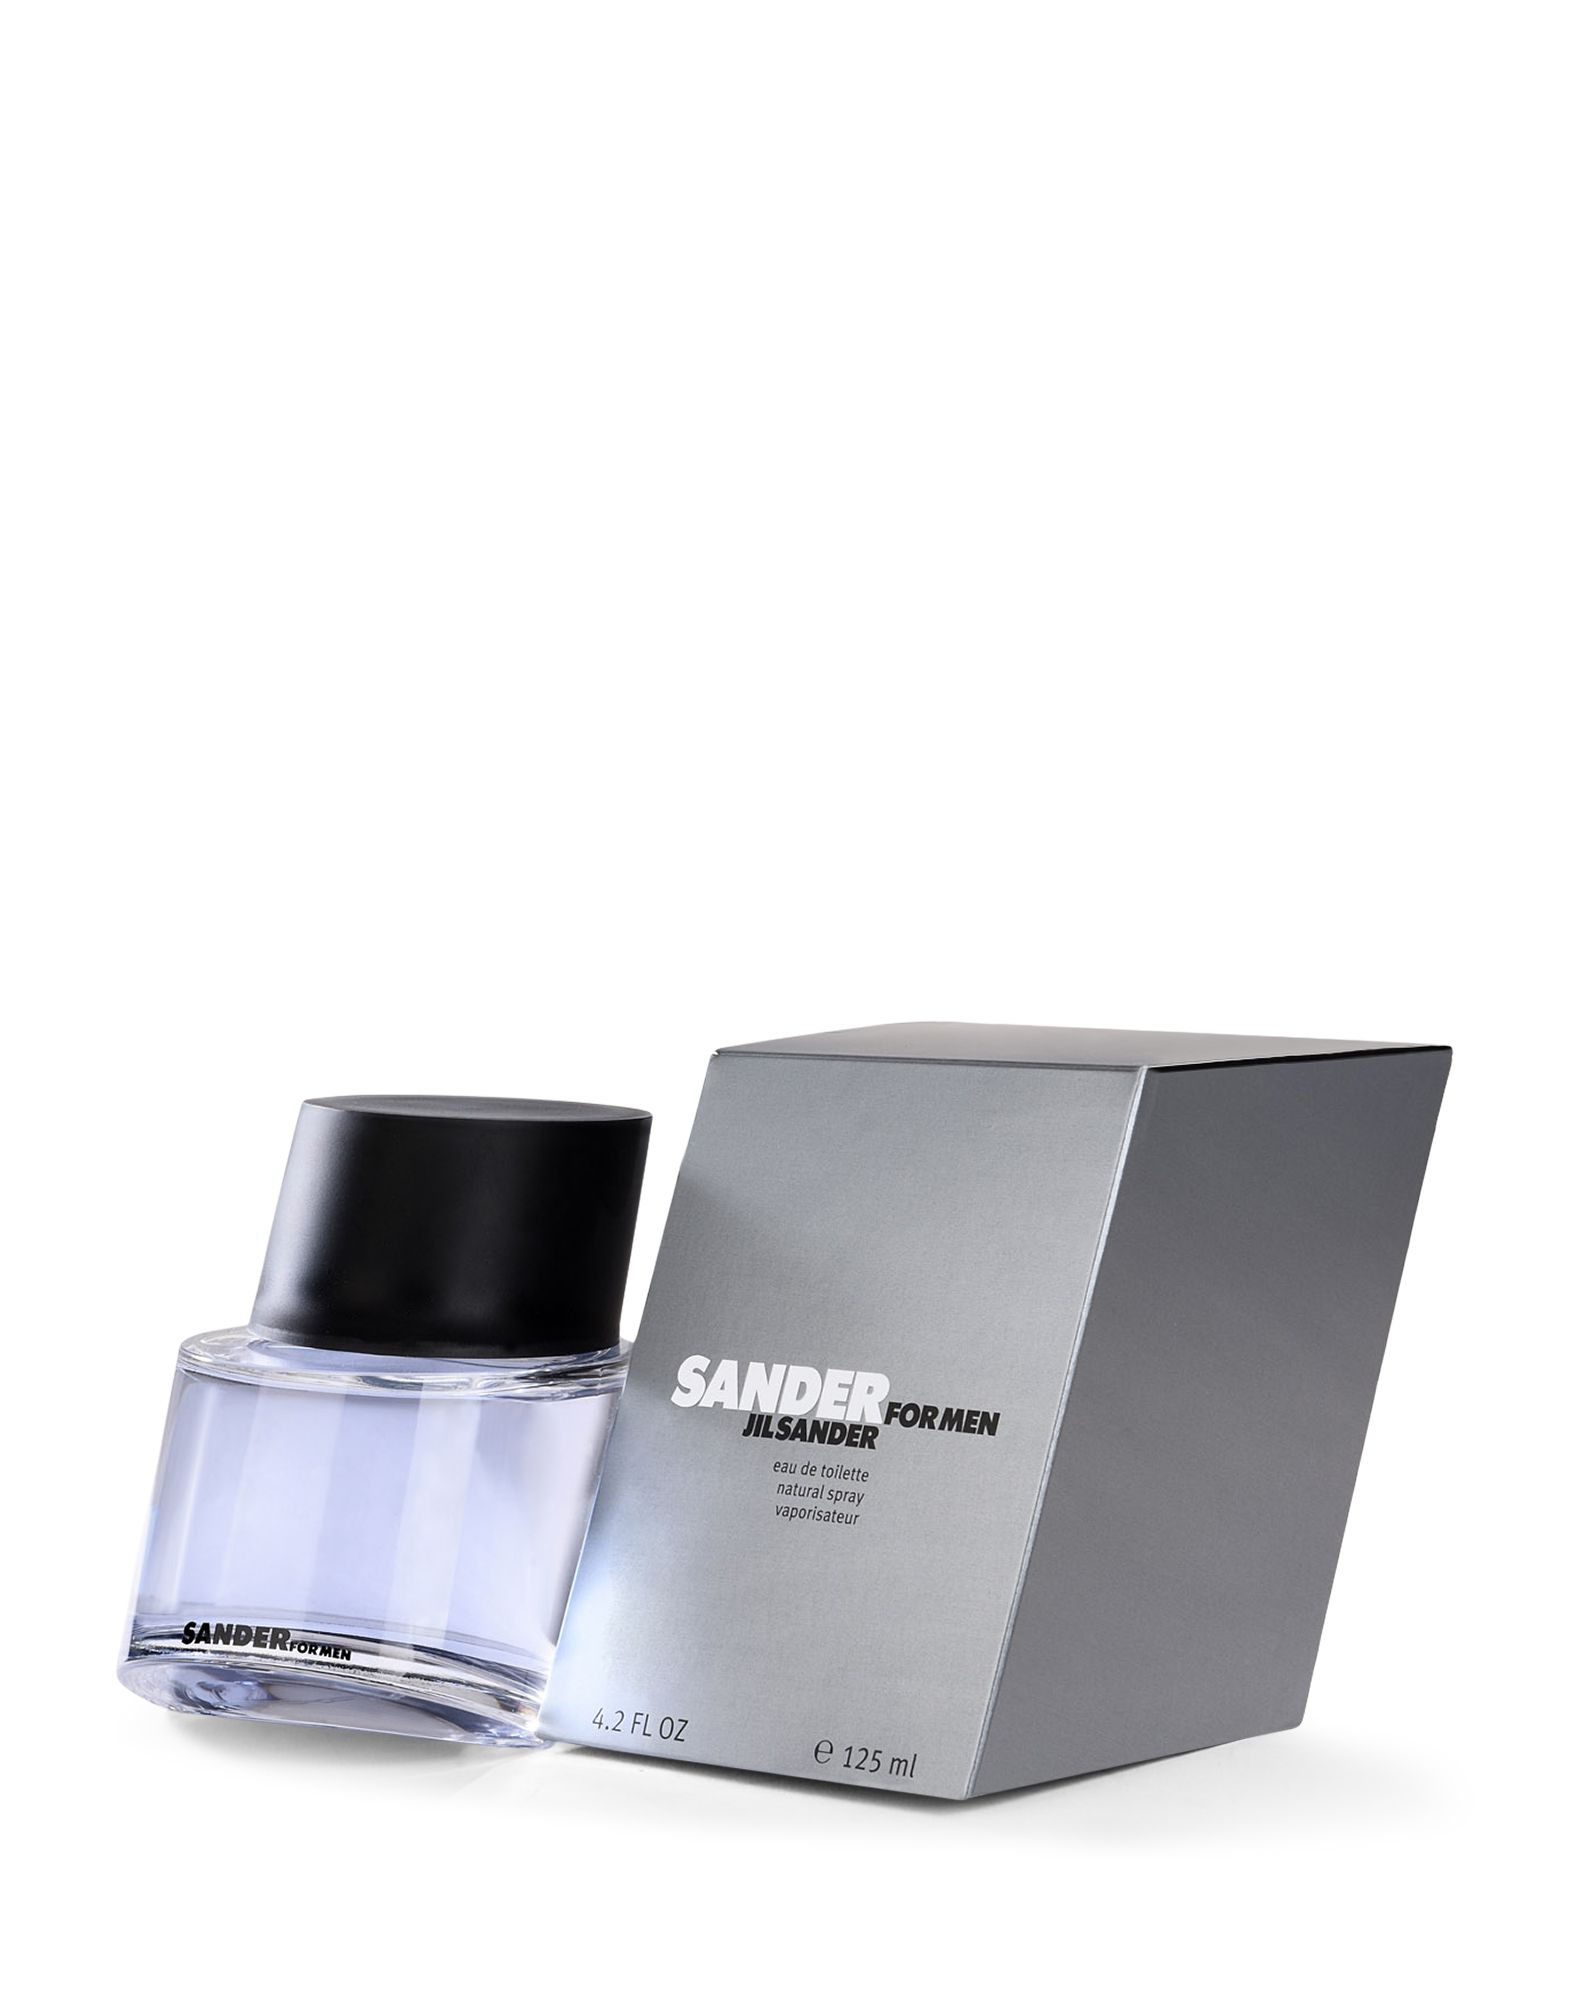 SANDER FOR MEN  - JIL SANDER Online Store